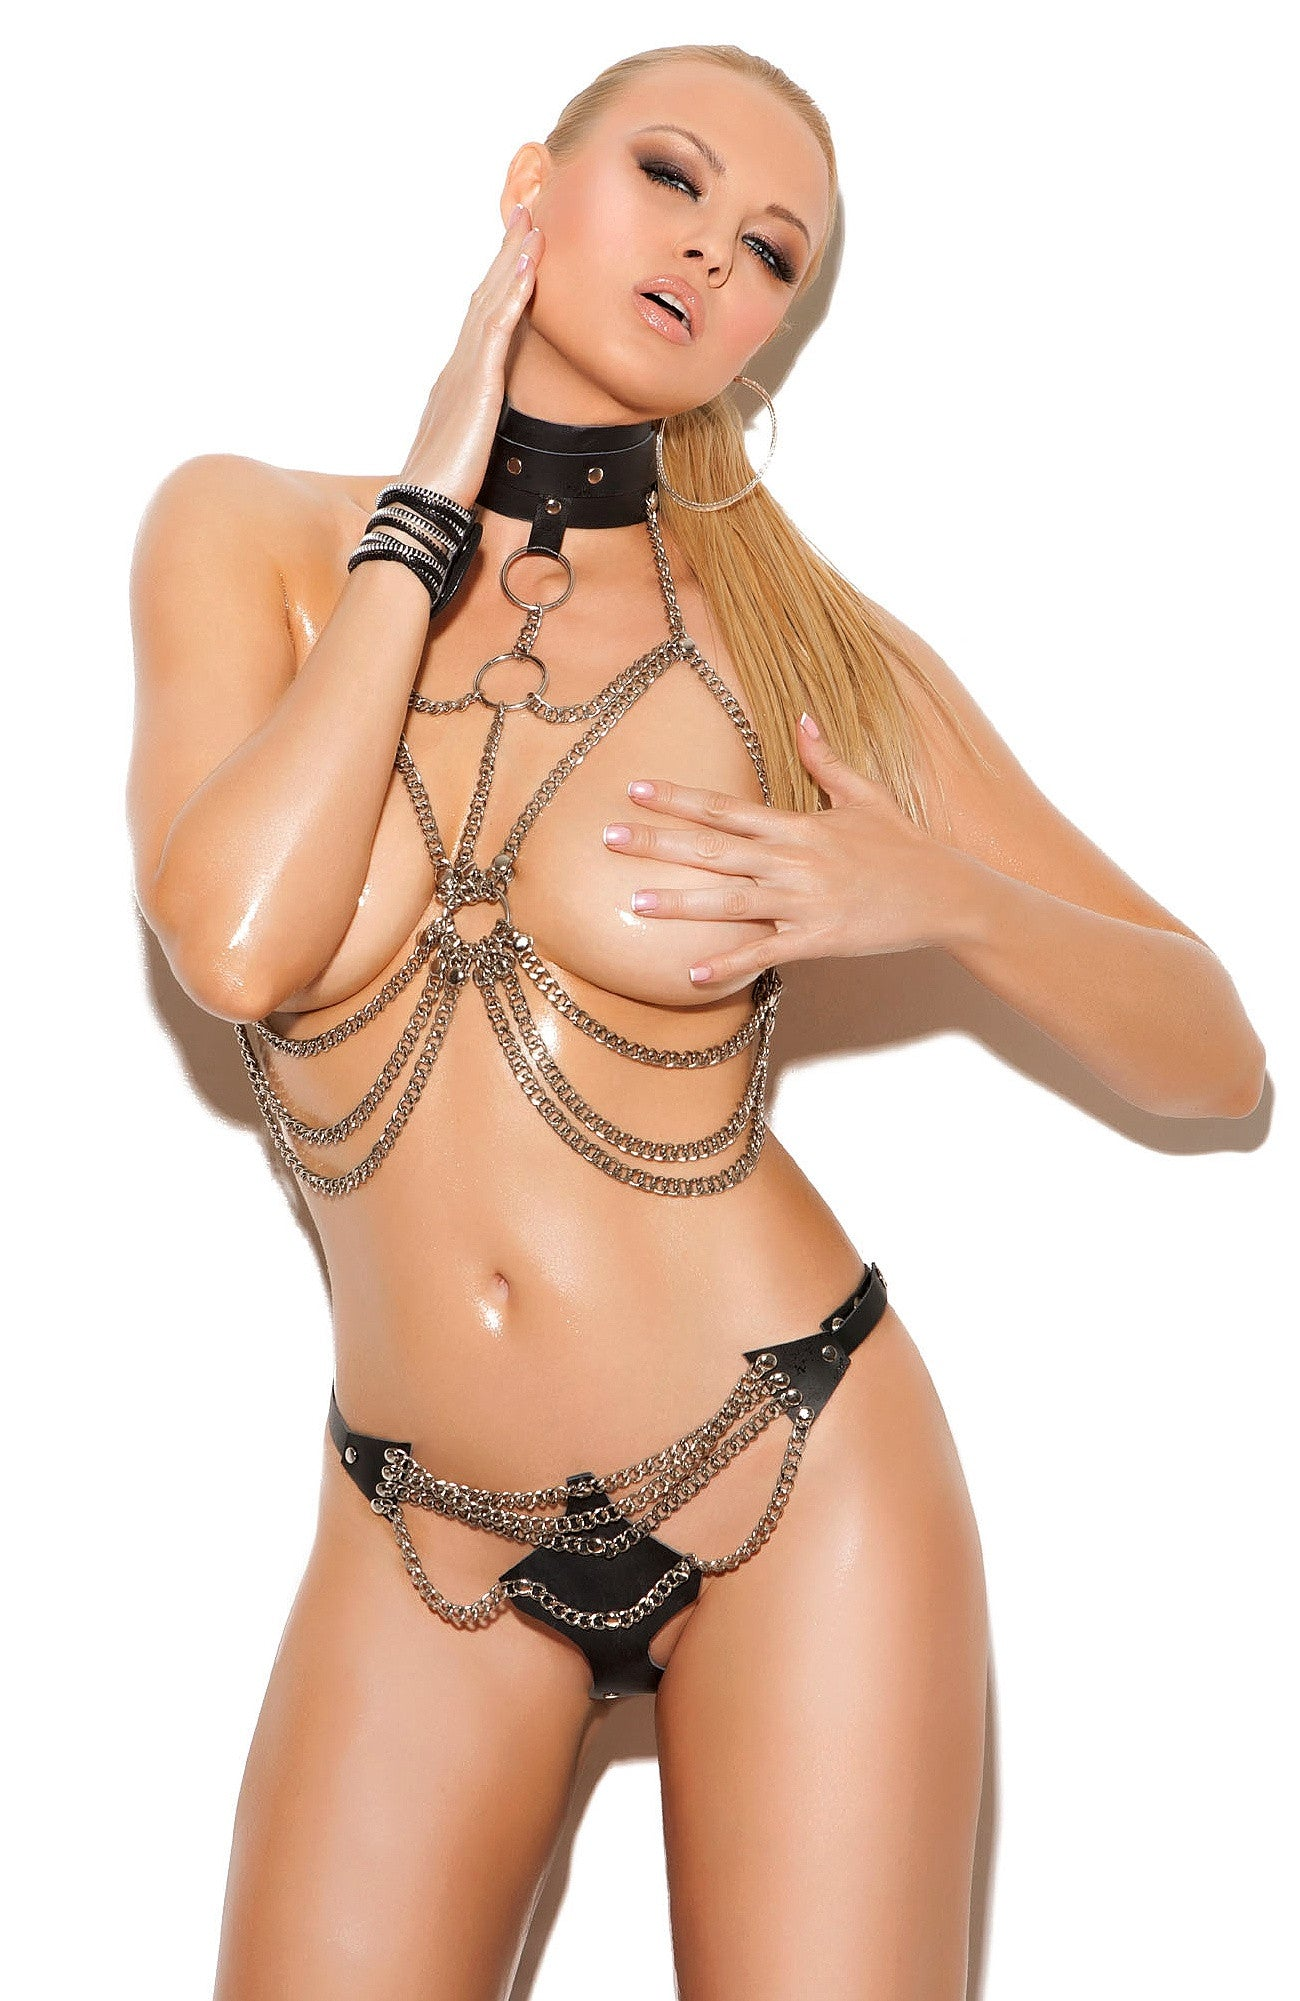 L1131 Leather and chain bra set - Sexylingerieland  - 1